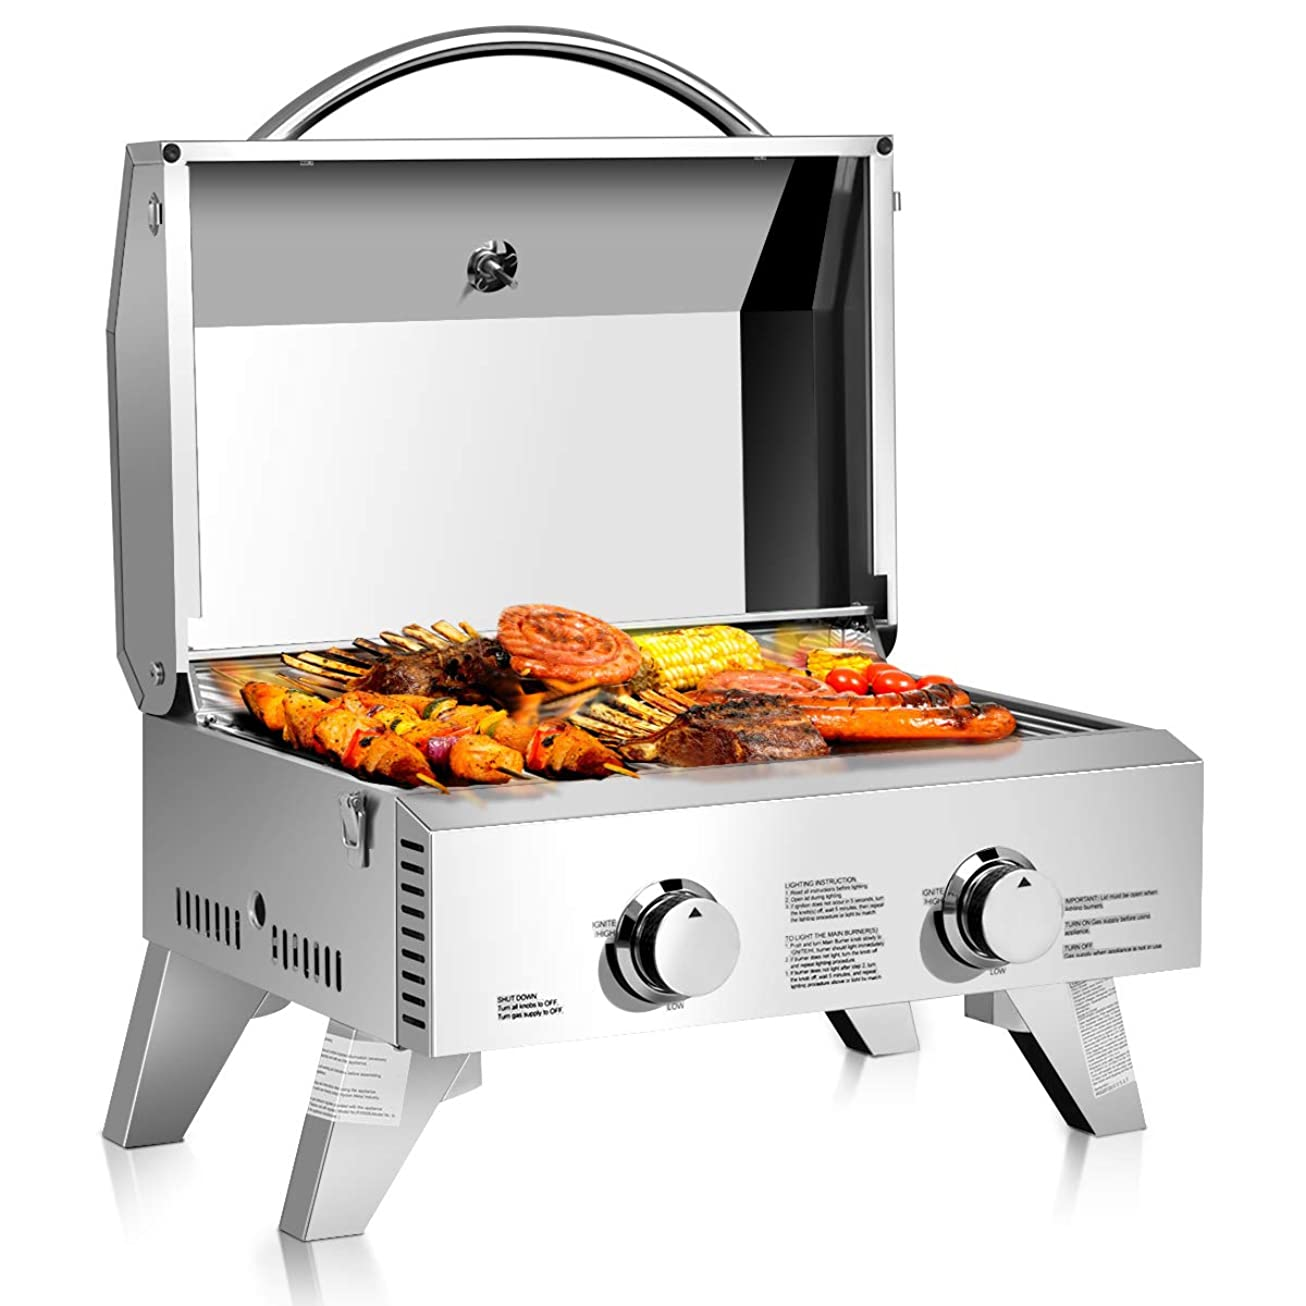 """Giantex Propane Tabletop Gas Grill Stainless Steel Two-Burner BBQ, with Foldable Leg, 20000 BTU, Perfect for Camping, Picnics or Any Outdoor Use, 22"""" x 18"""" x 15"""", Silver ksesnunpskbs7"""